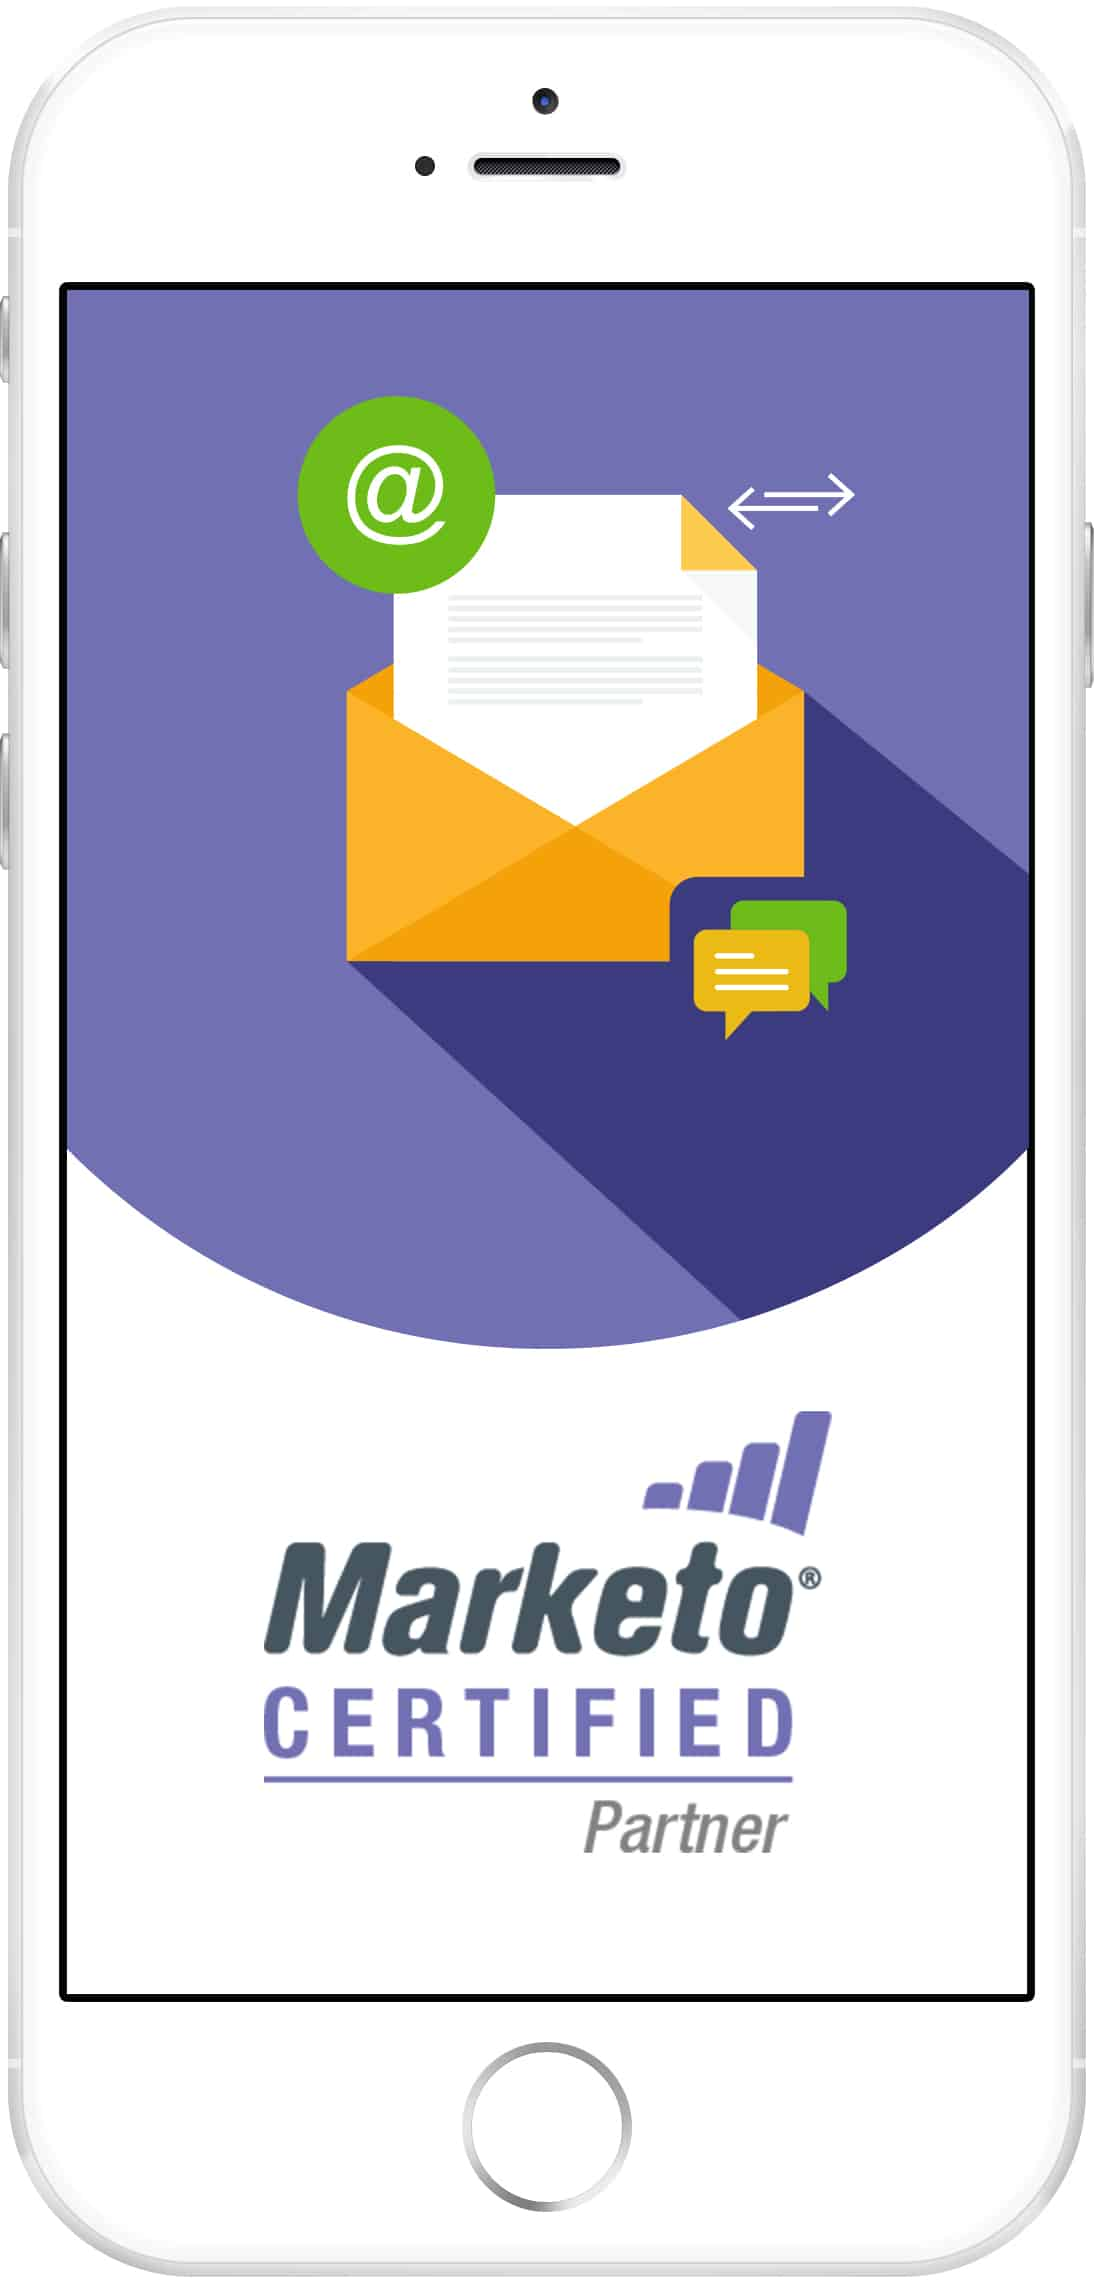 Marketo Experience And Certification